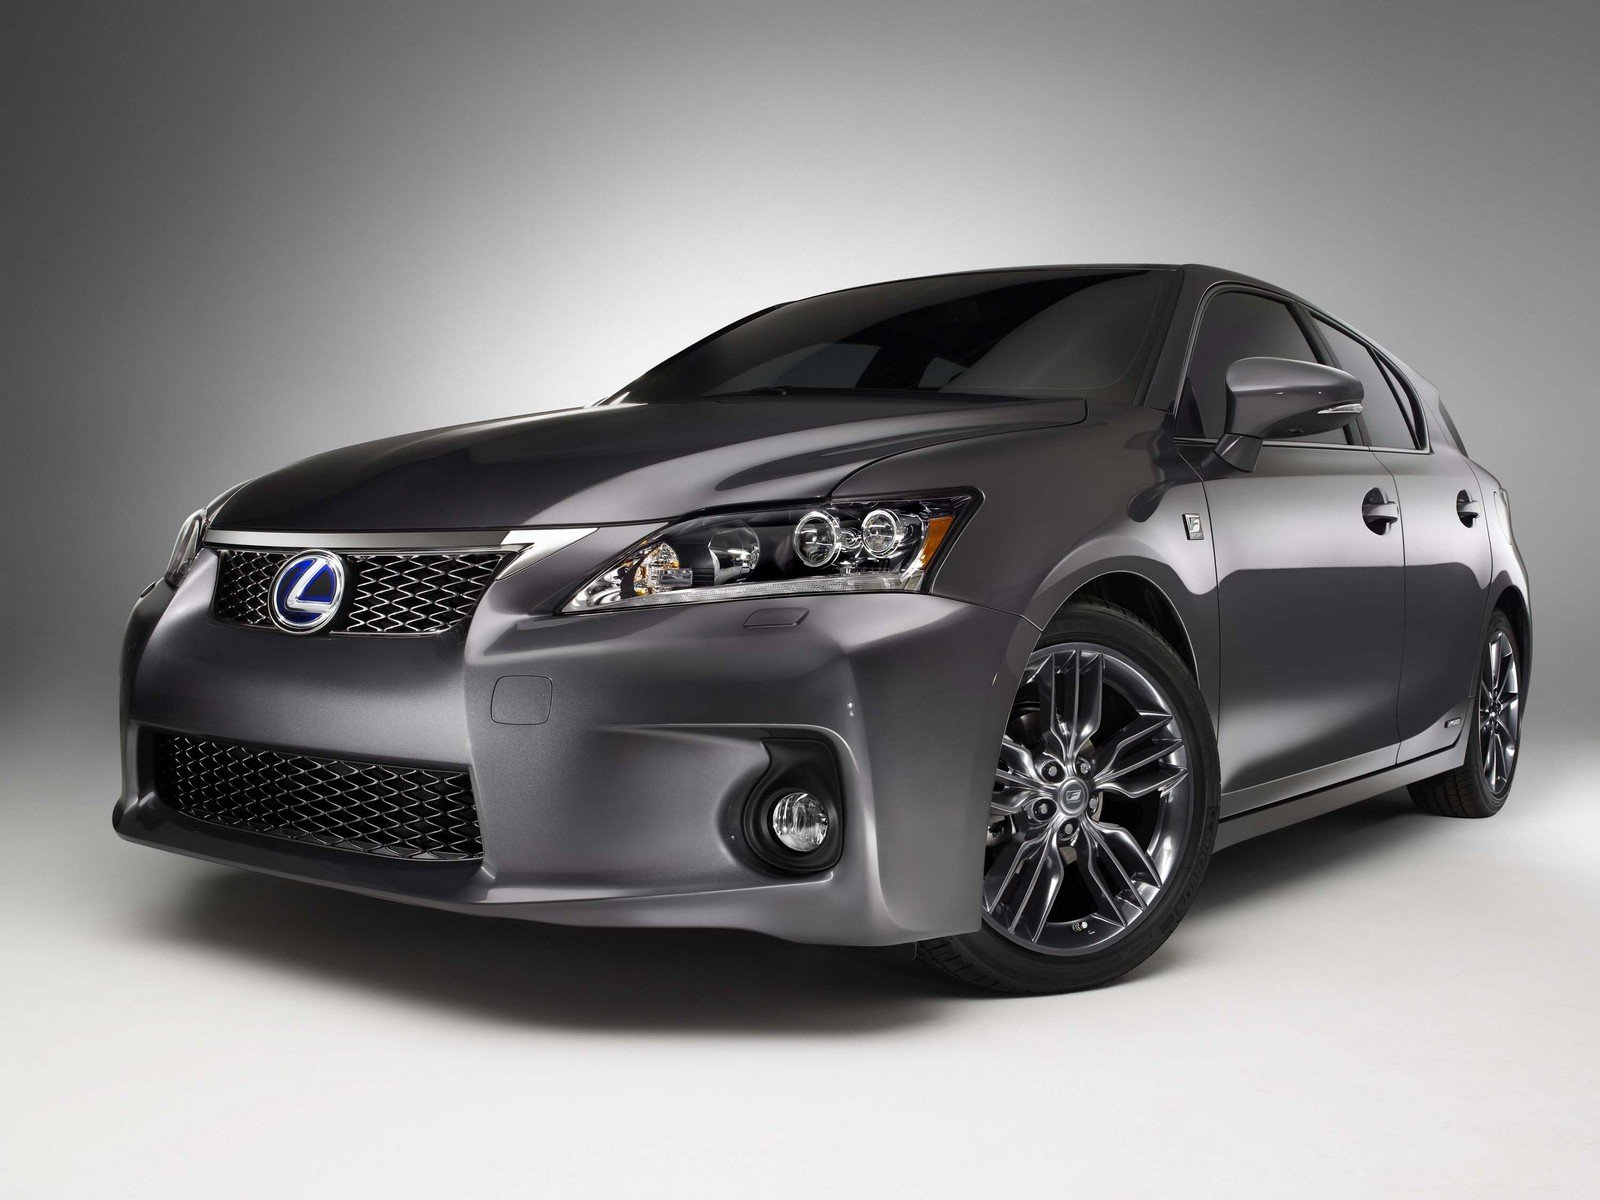 2012 lexus ct 200h f sport special edition review top speed. Black Bedroom Furniture Sets. Home Design Ideas